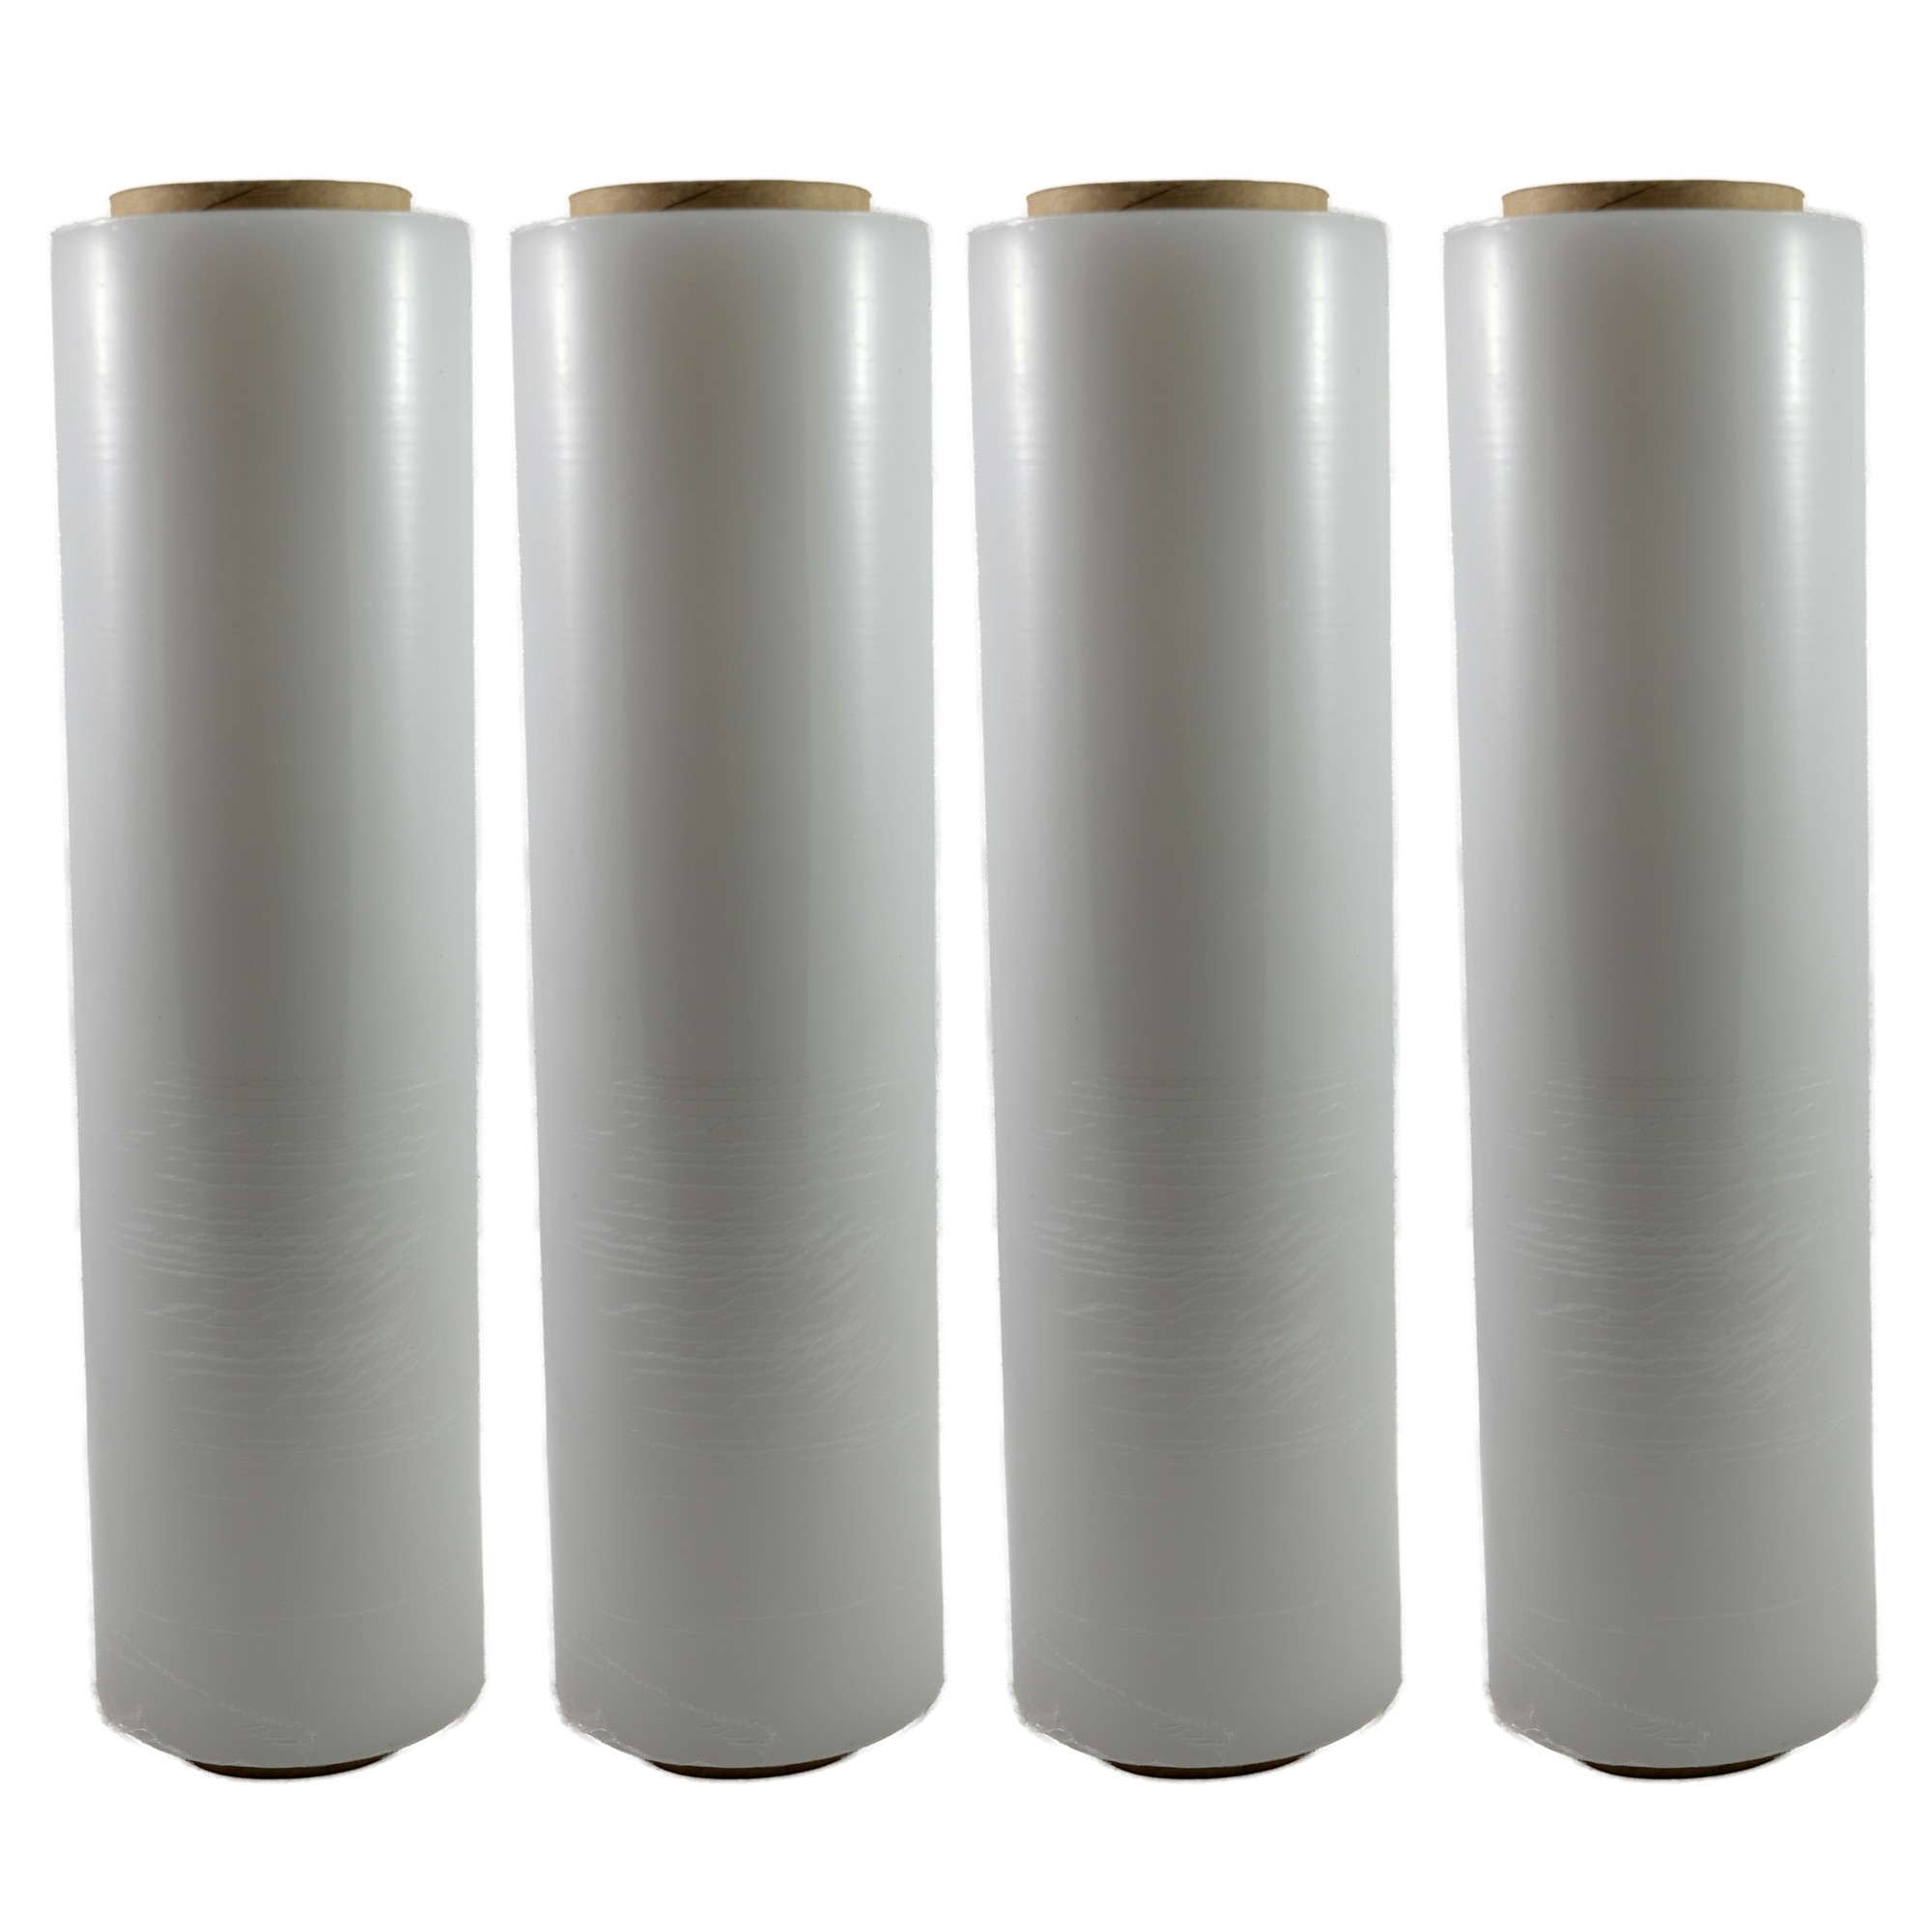 "TOTALPACK® 16"" x 1000' 65 Gauge, 4 Rolls. Gauge Blown Stretch Clear Film"